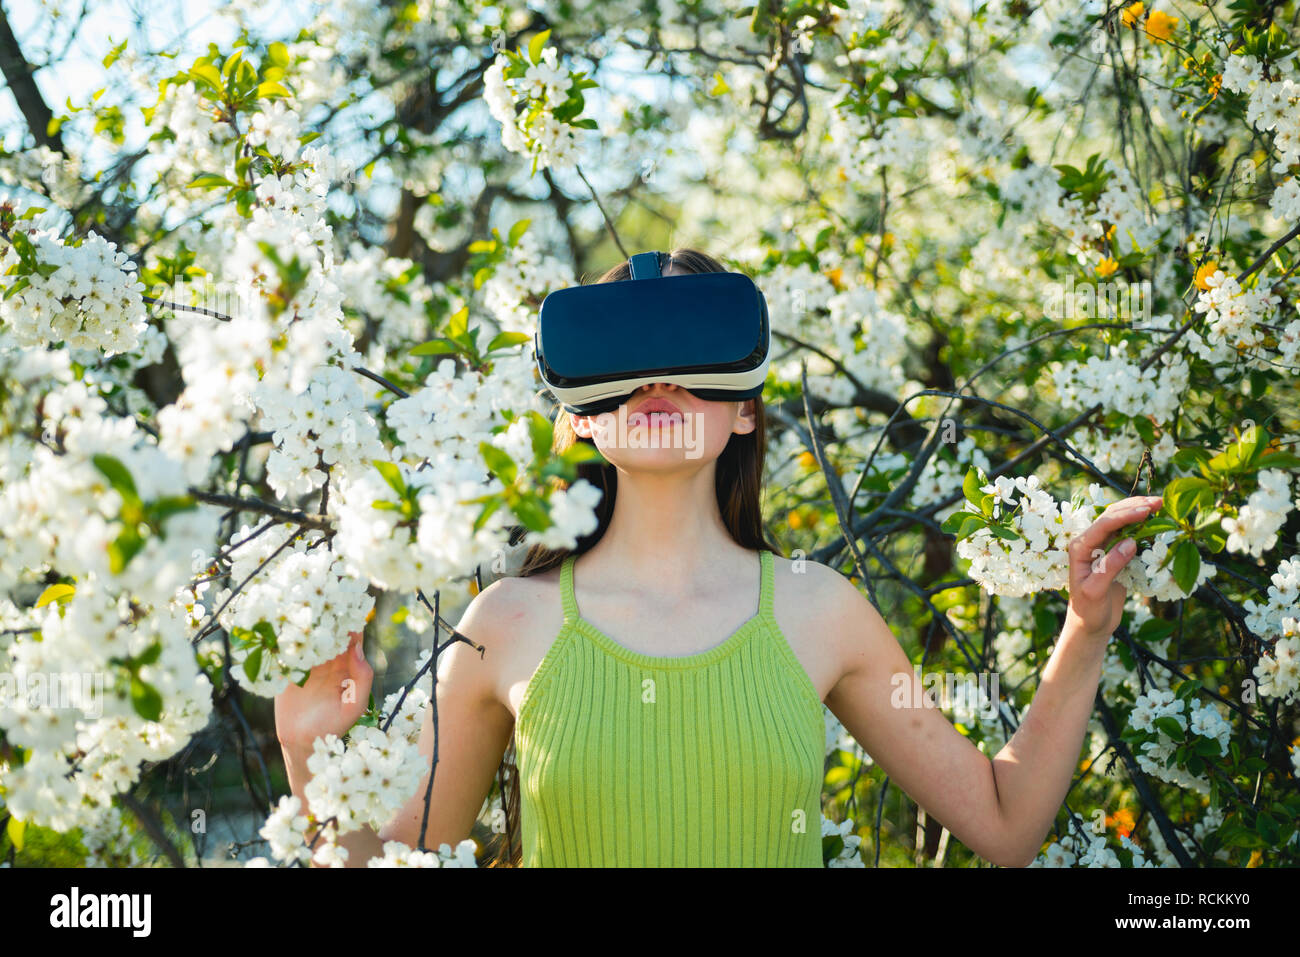 Young Woman Touching VR Glasses Stock Photo - Image of